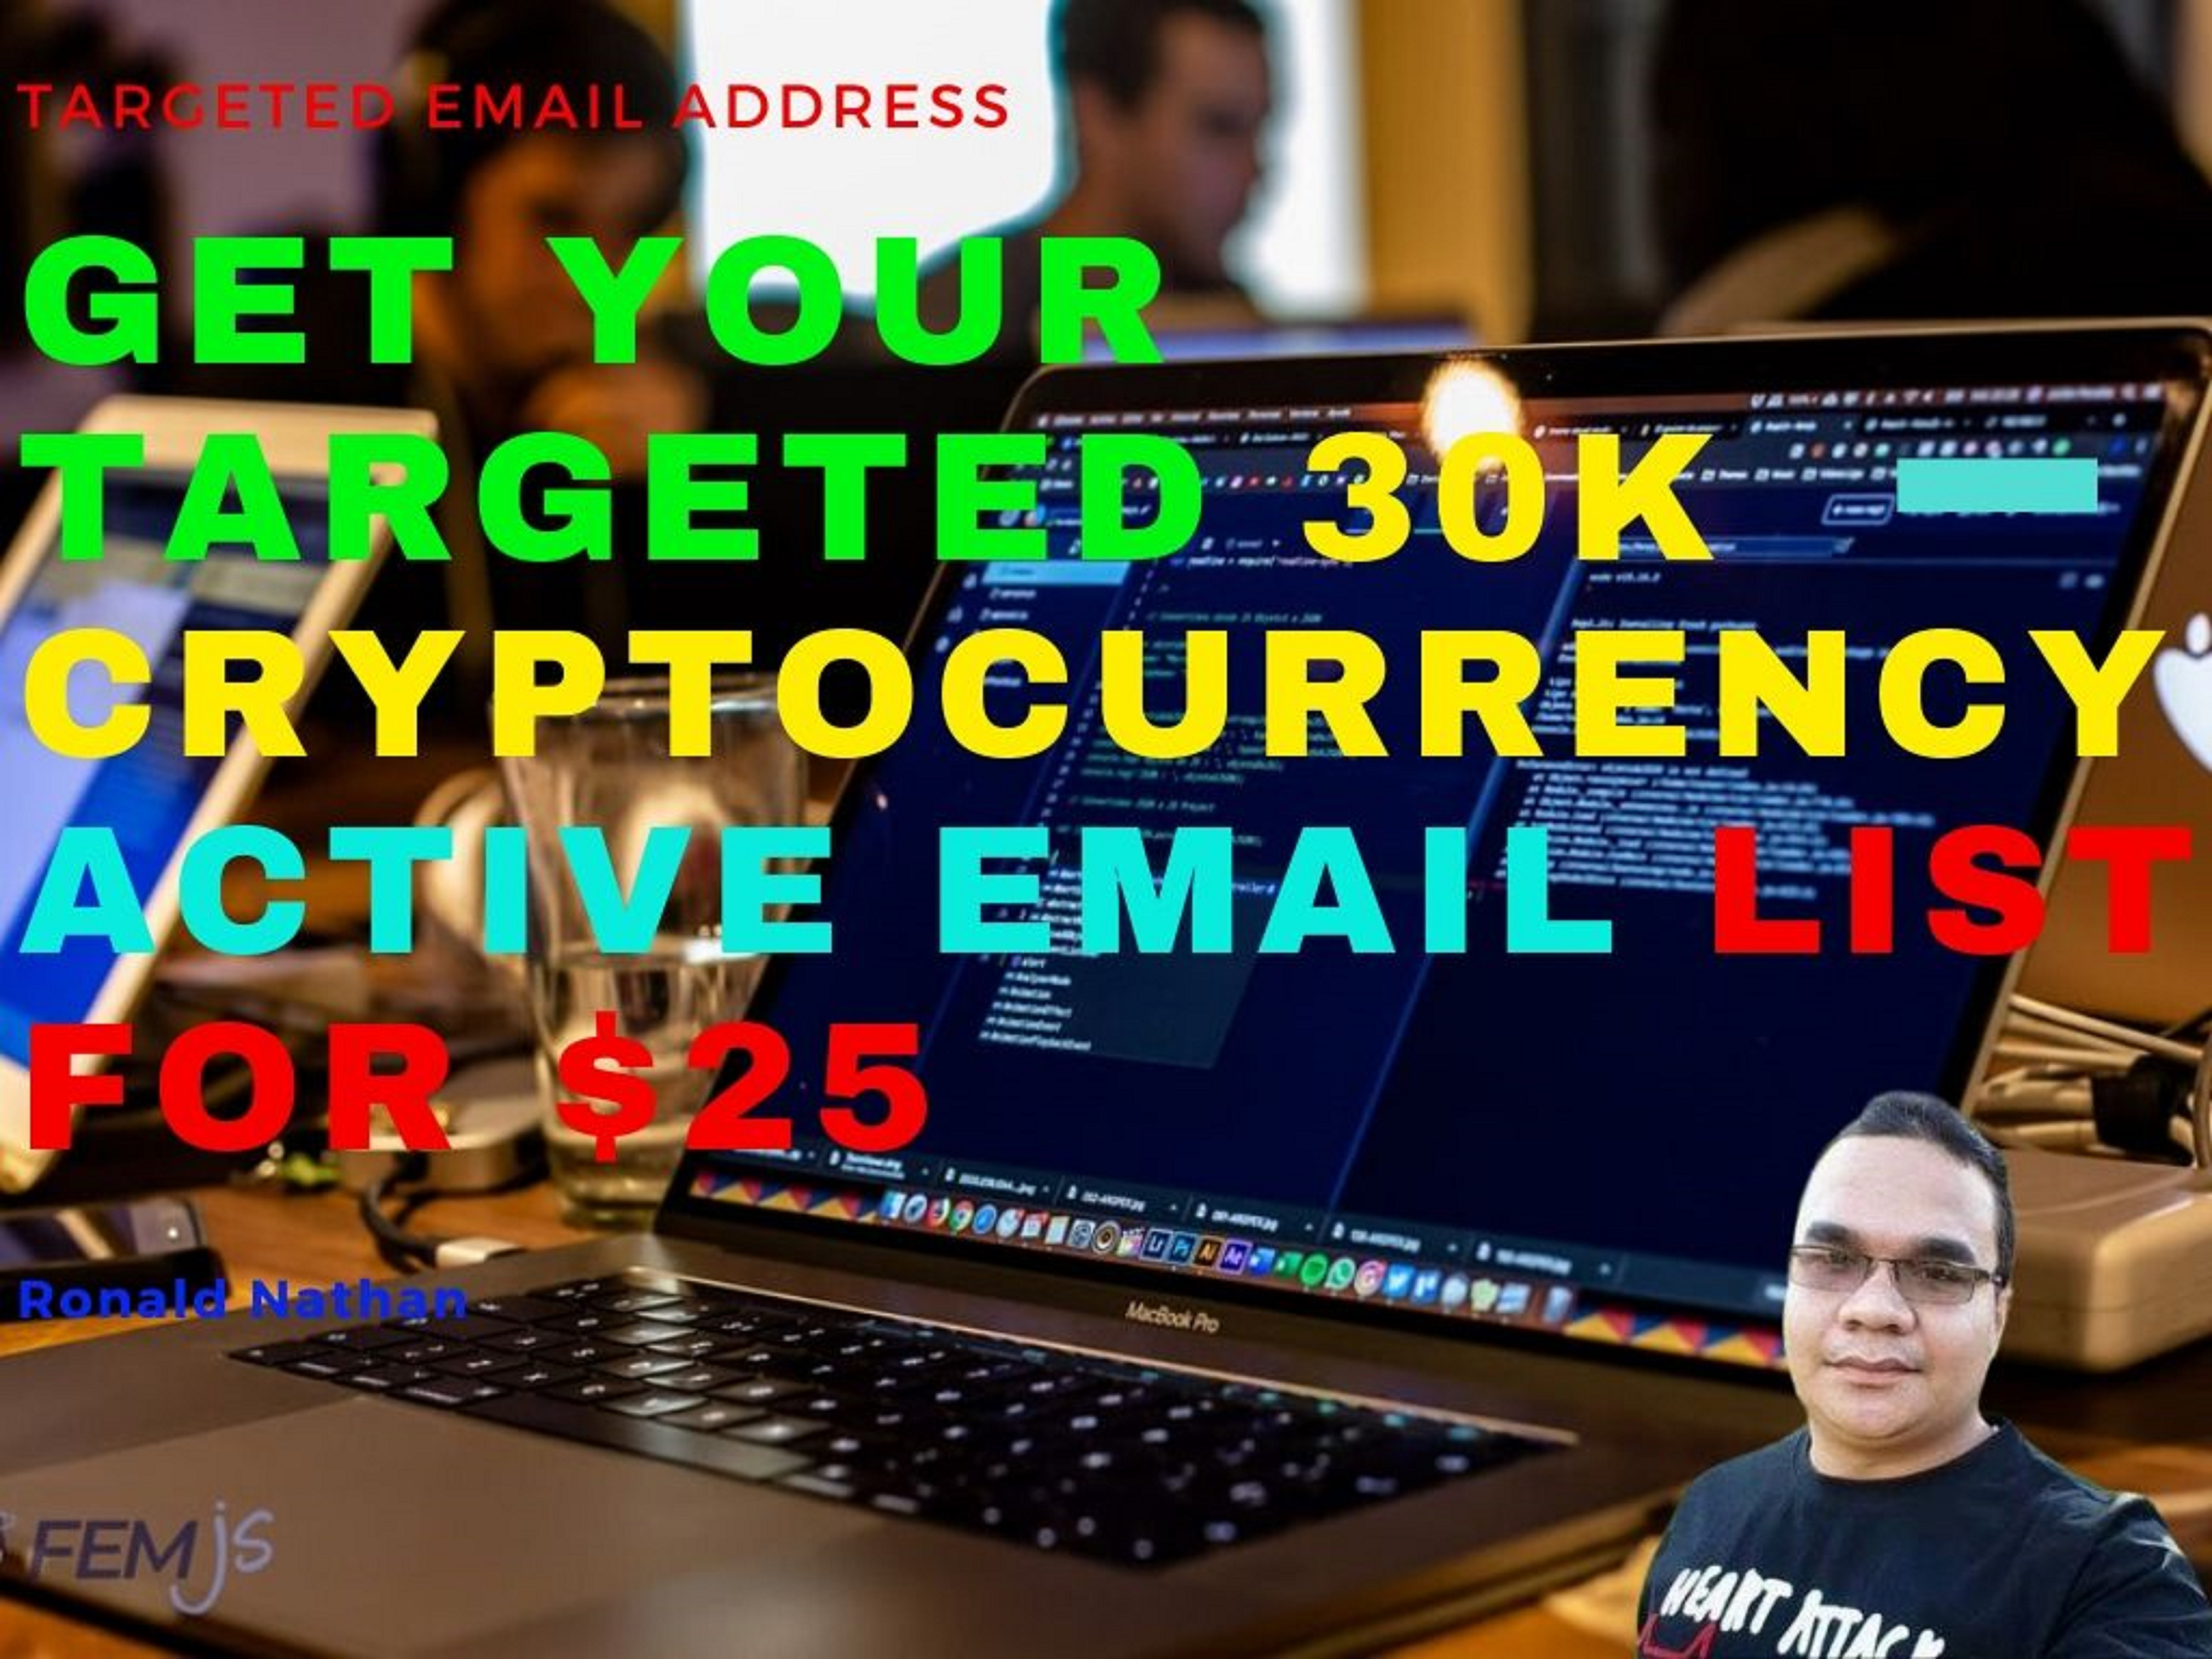 Get your targeted 30k Cryptocurrency Active Email list